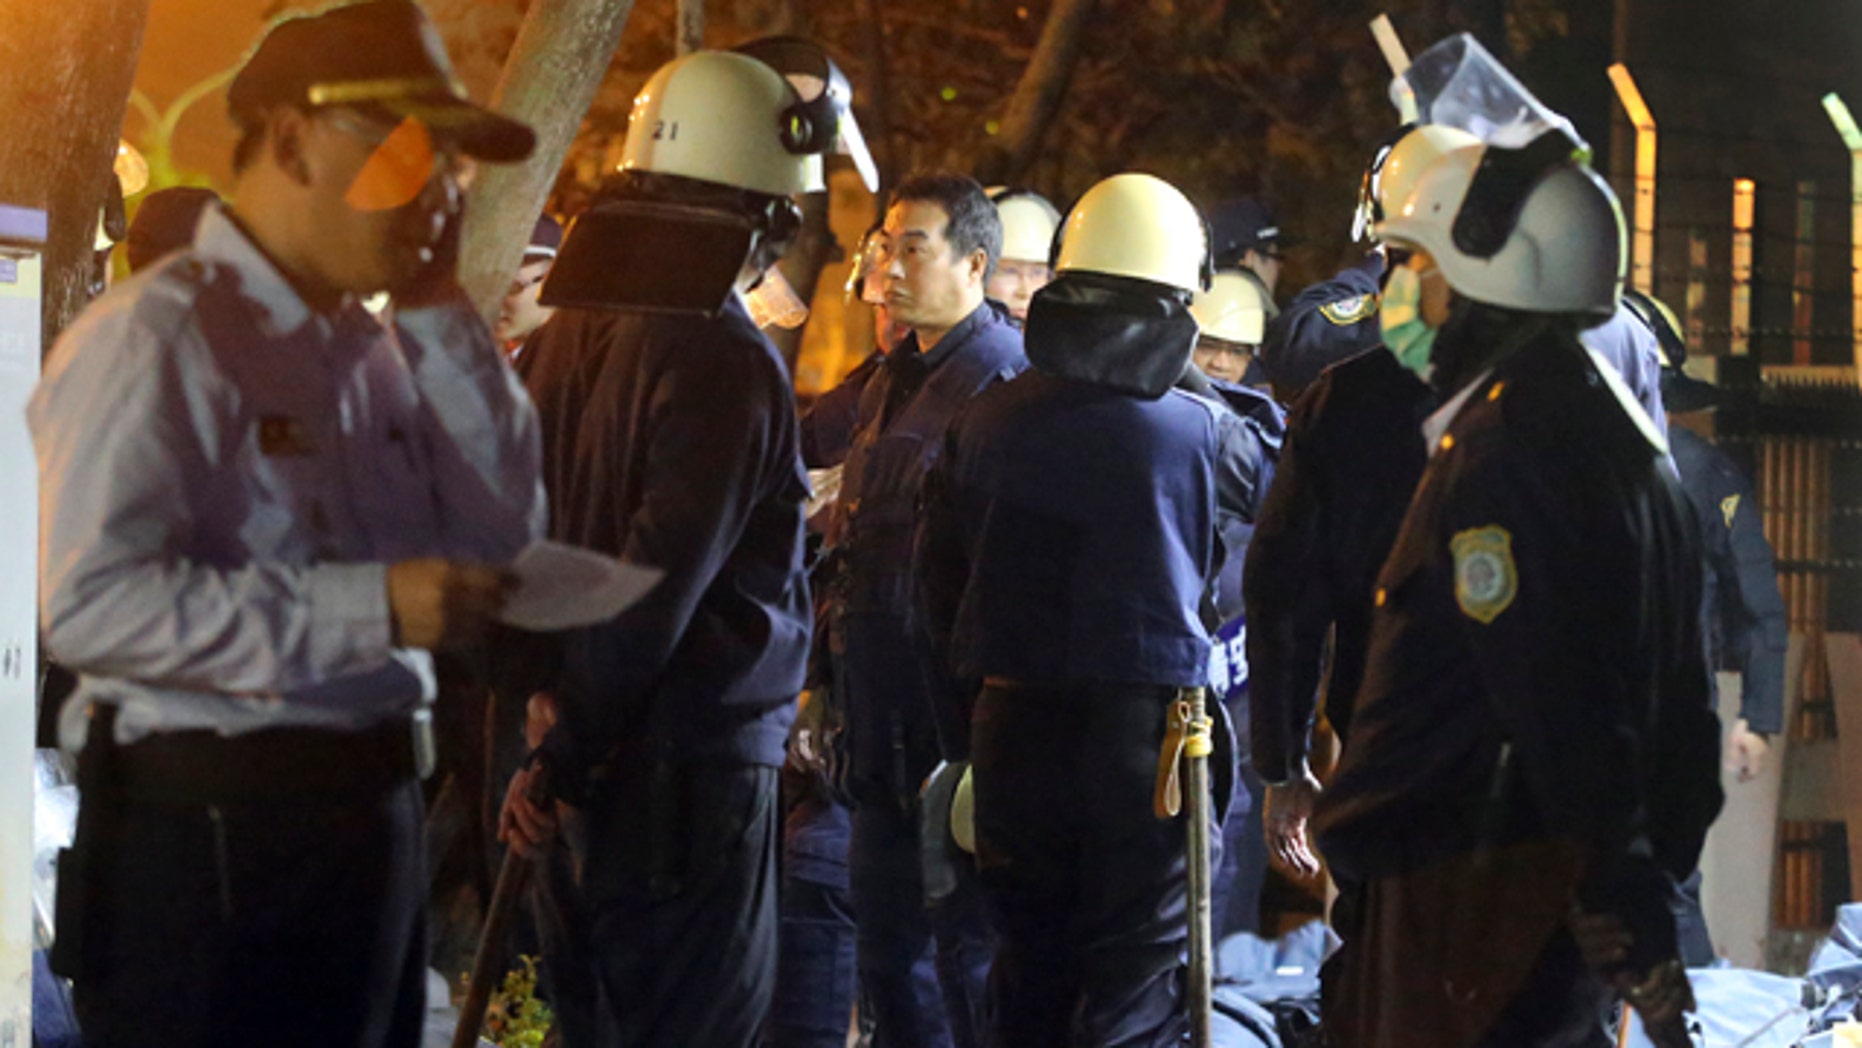 Feb. 11, 2015: Police in riot gear gather outside of a prison as prisoners hold prison staff hostage inside in Kaohsiung, Taiwan. (AP Photo)